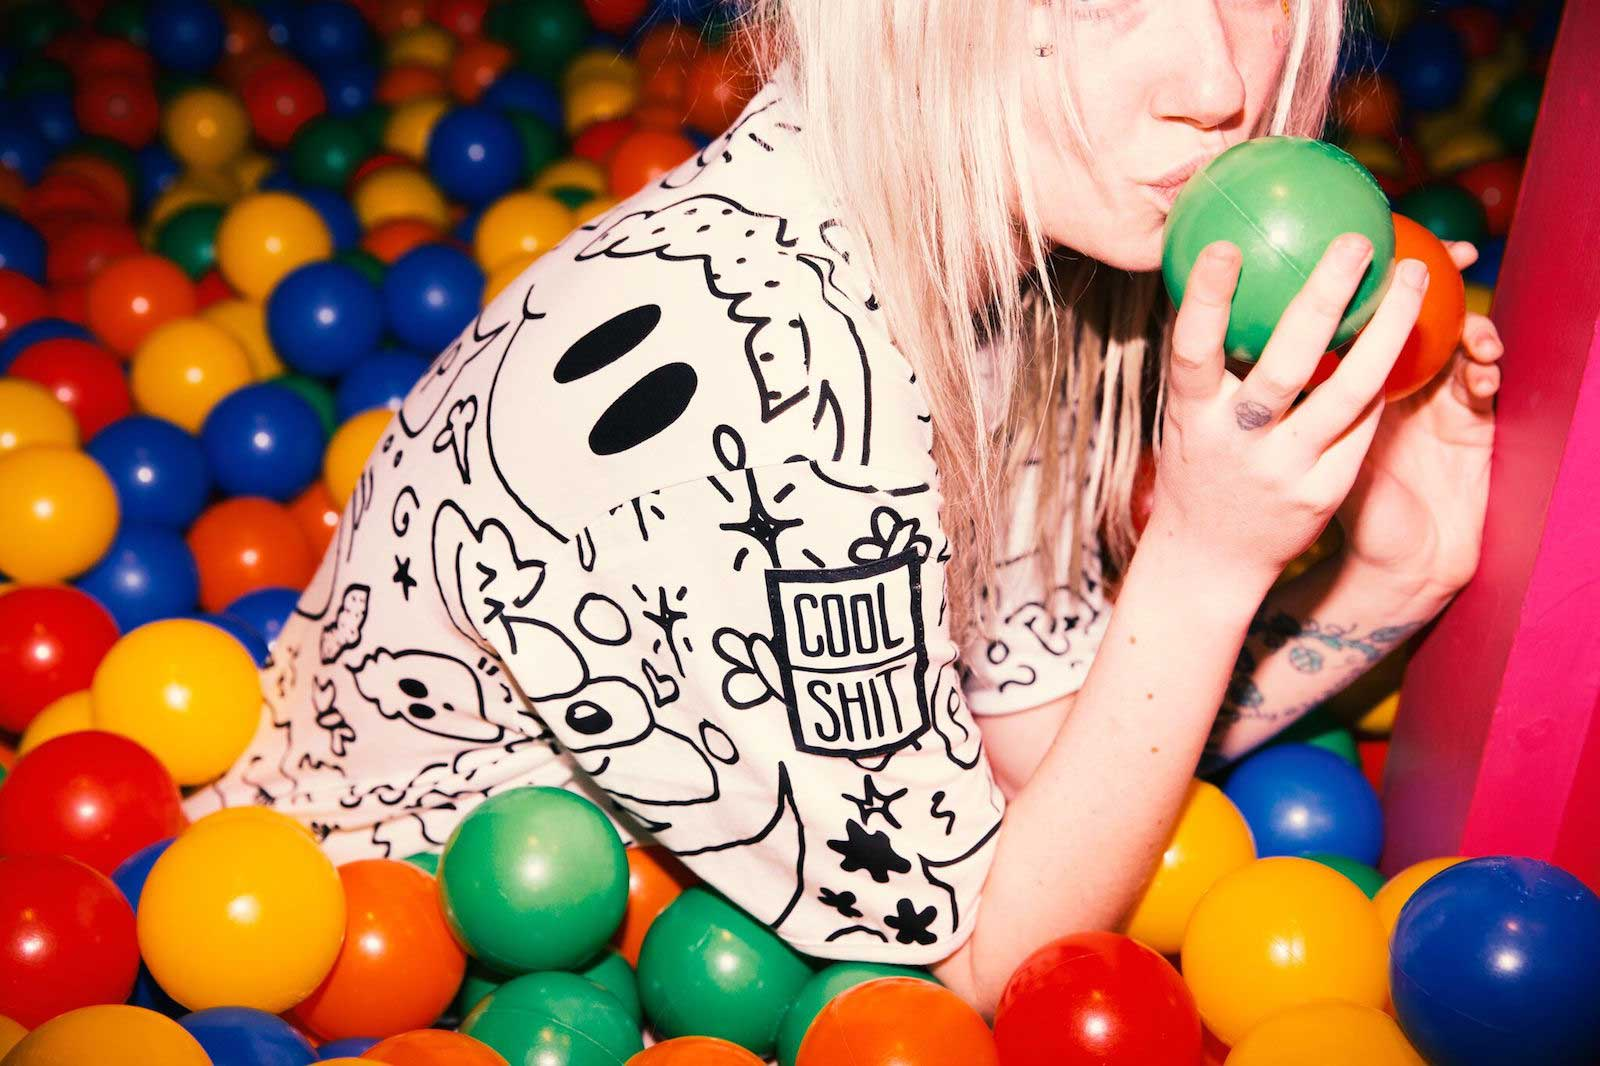 Join Us at Monarch for a Massive Ball Pit Dance Party on April 28th